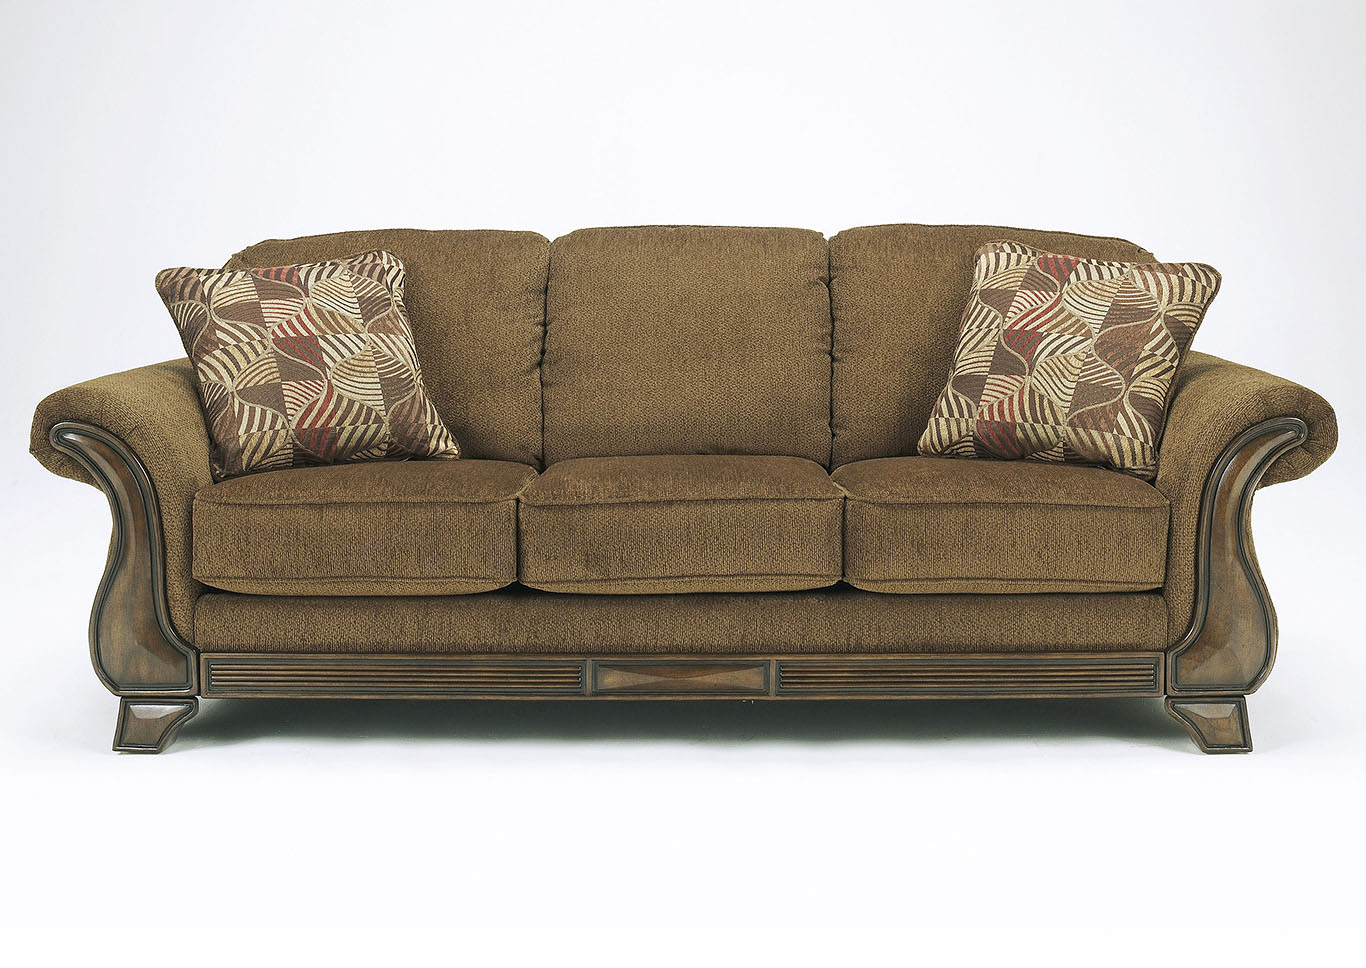 Montgomery Mocha Queen Sleeper Sofa,Signature Design By Ashley